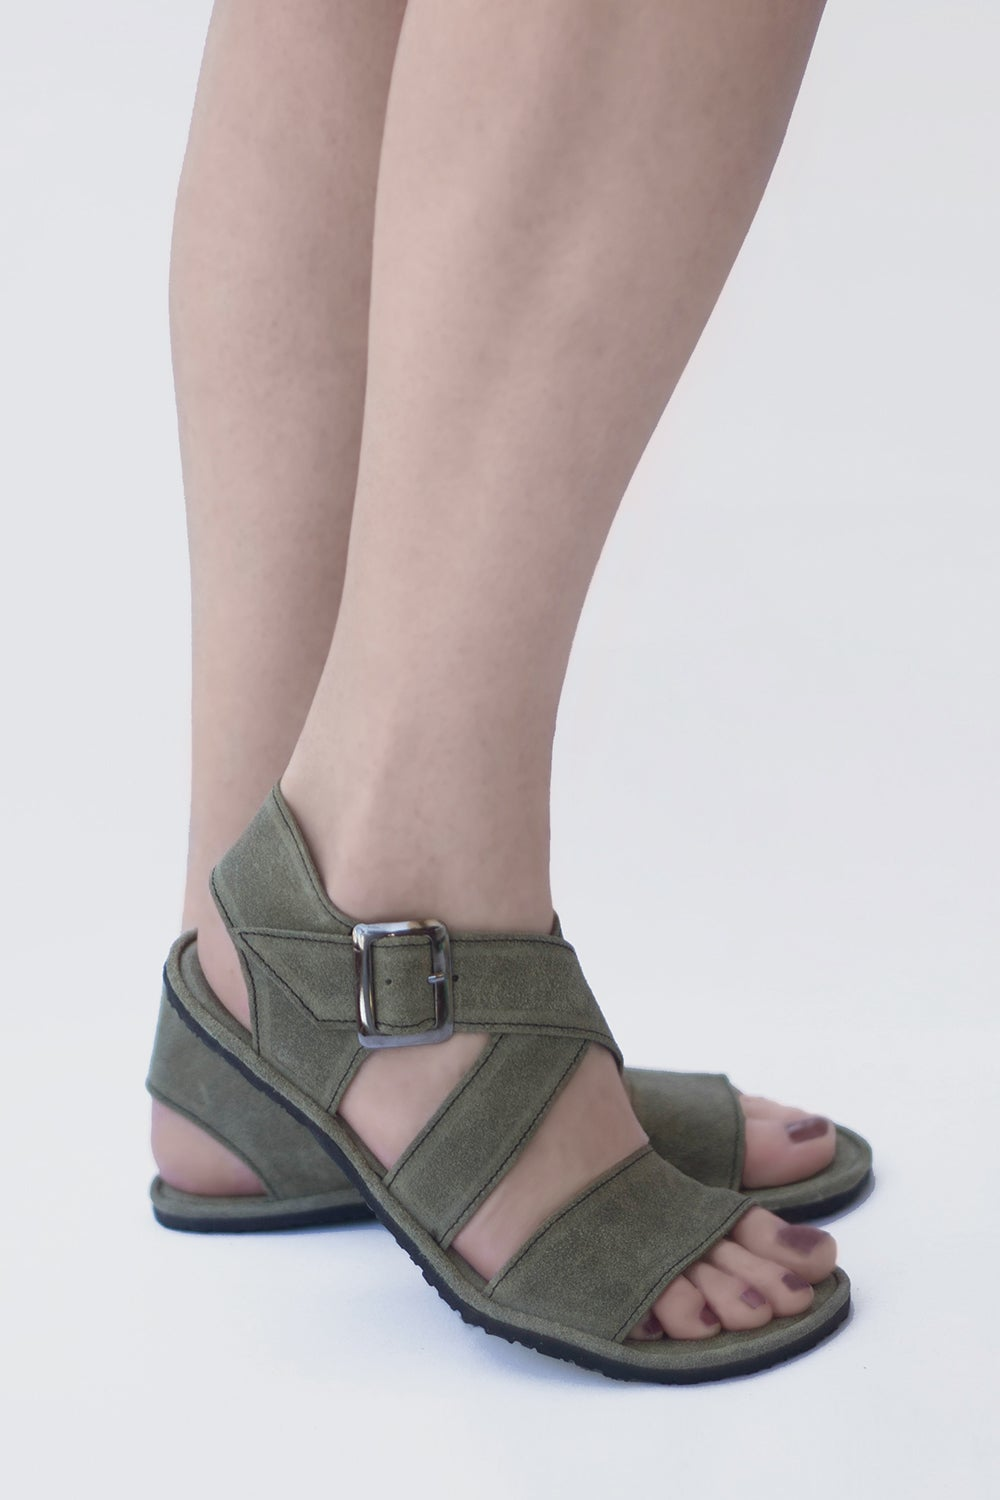 Image of Handmade Leather Sandals - Sandal X in Olive